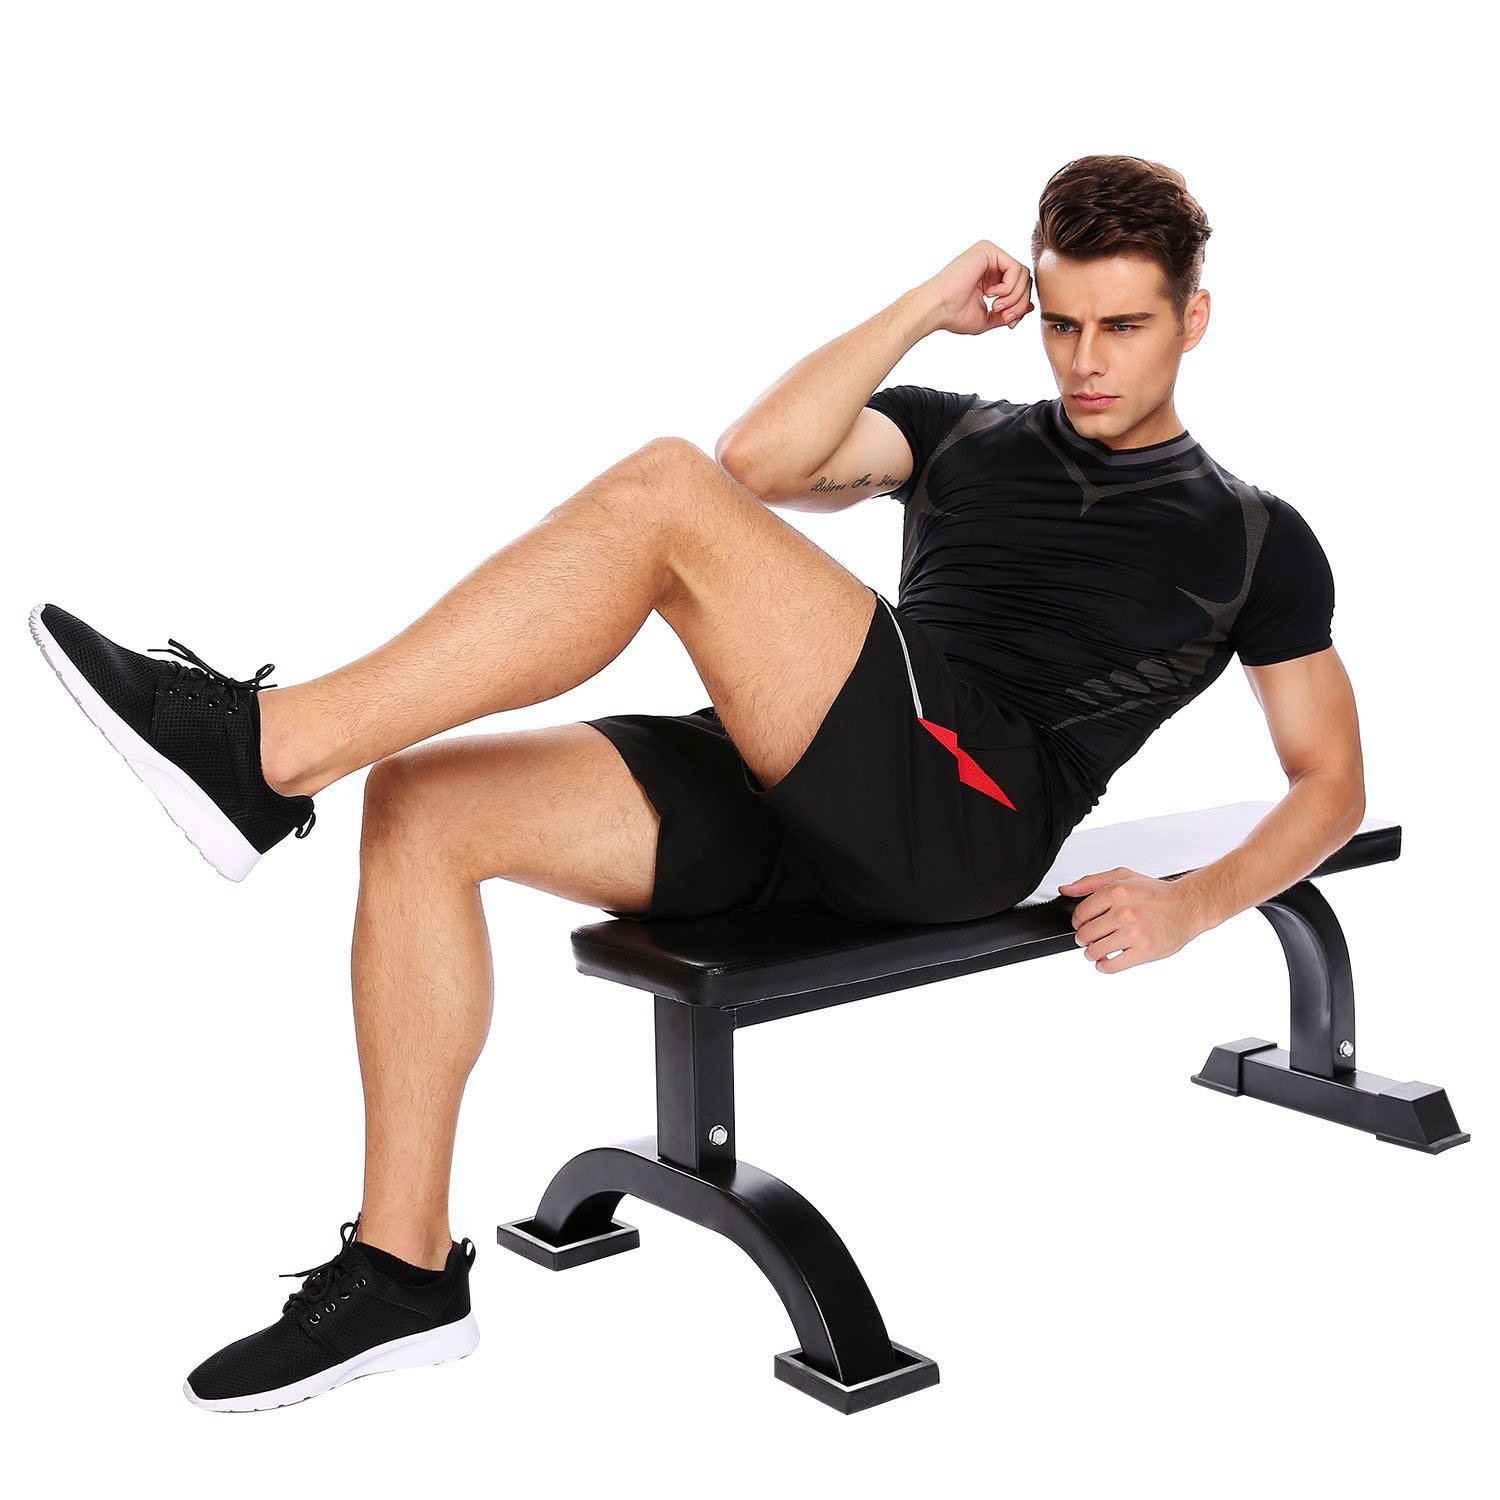 Flat Weight Bench Height Heavy Duty Padded Flat Weight Lifting Bench by evokem